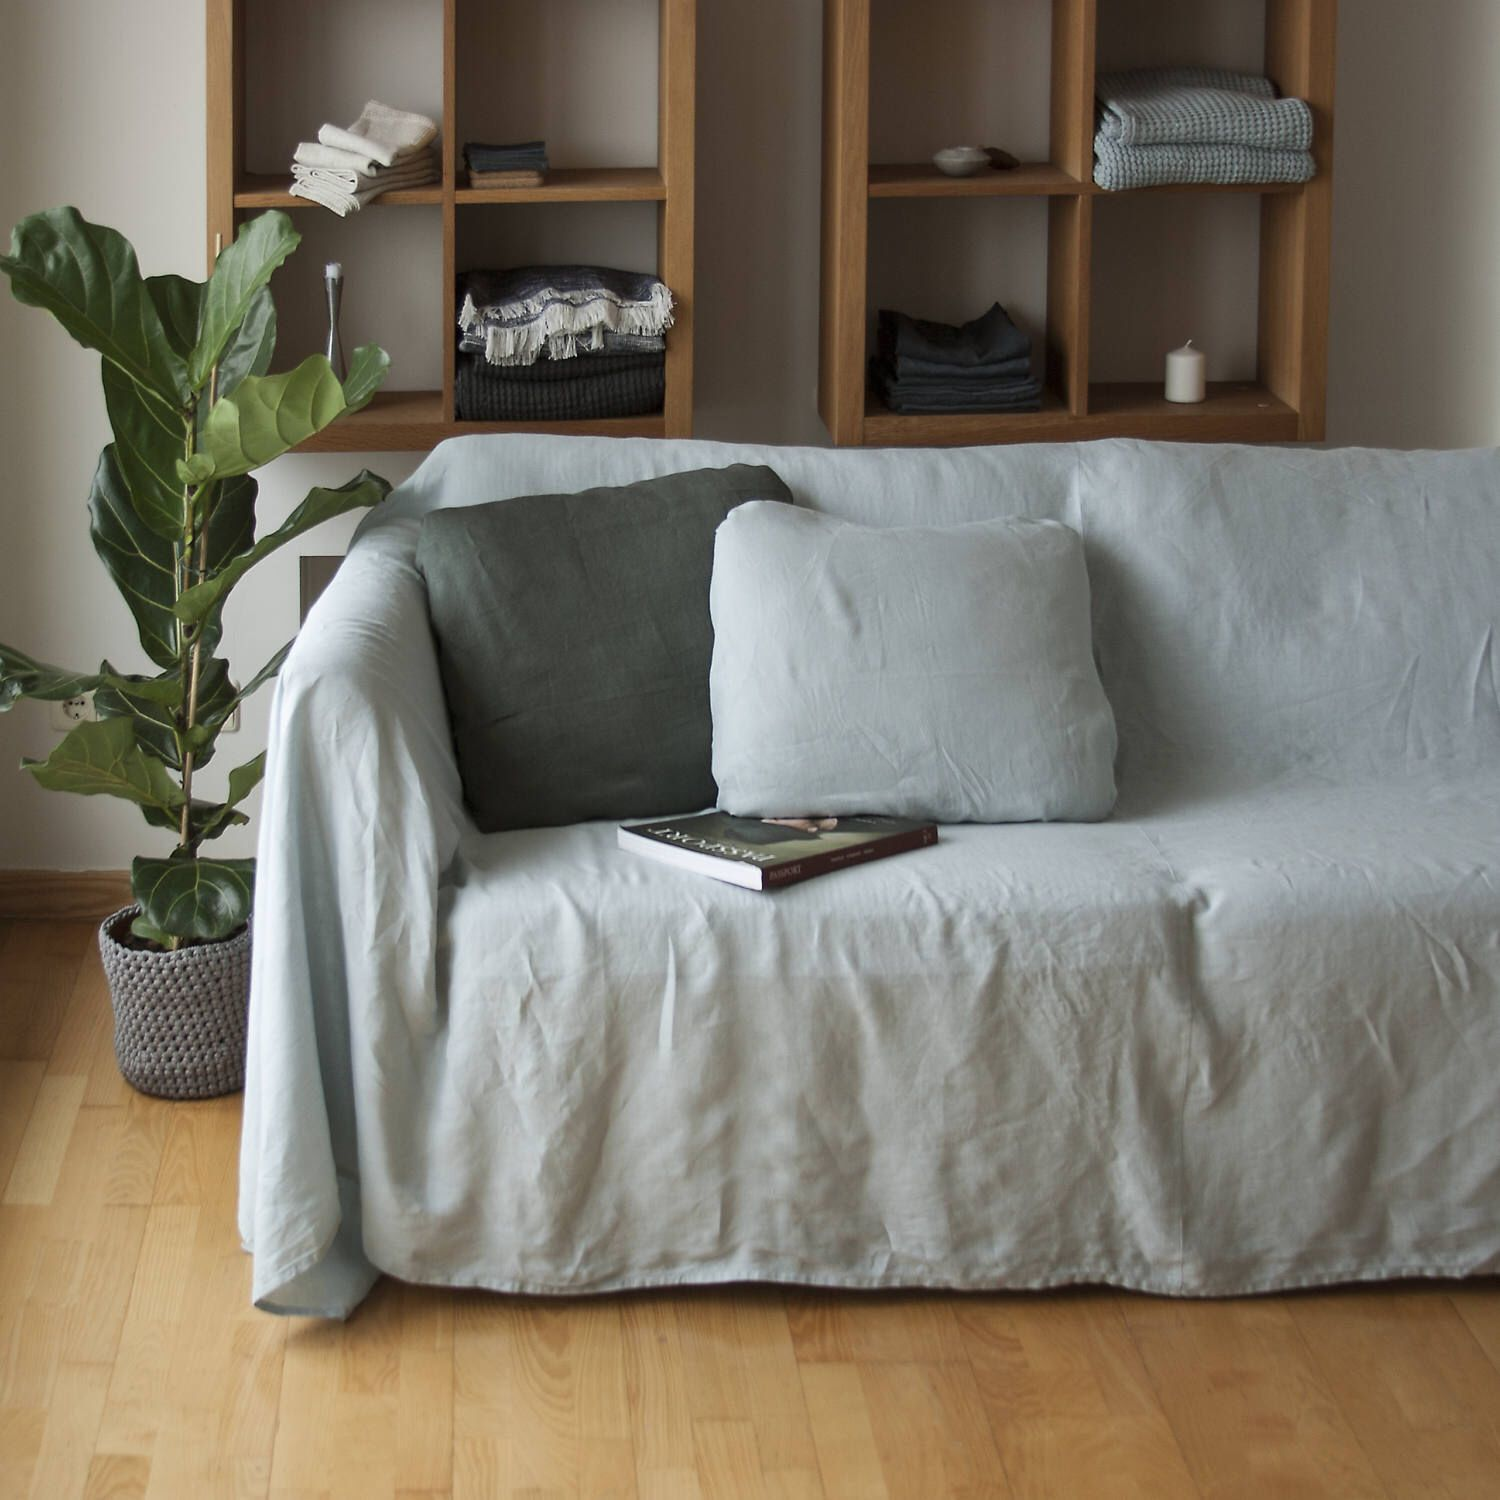 Incredible Linen Couch Cover Linen Bedspread Natural Sofa Cover Ncnpc Chair Design For Home Ncnpcorg